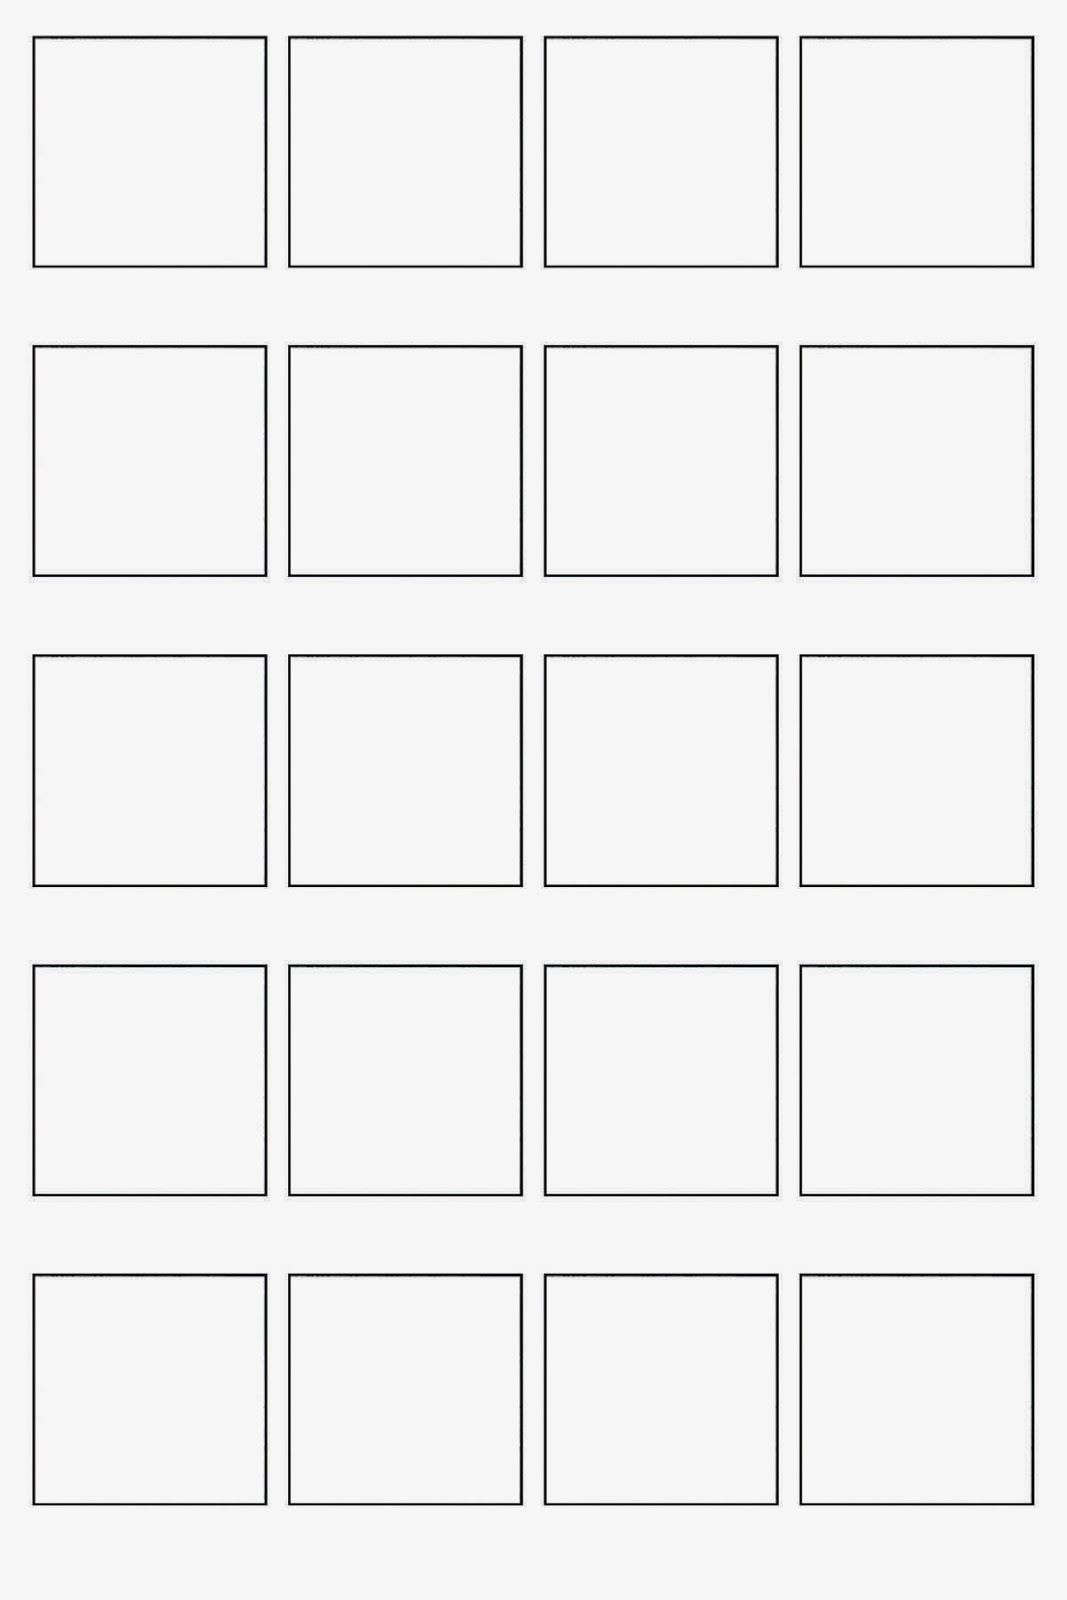 Per Request I Have Posted A Couple Files Of Blank Pattern